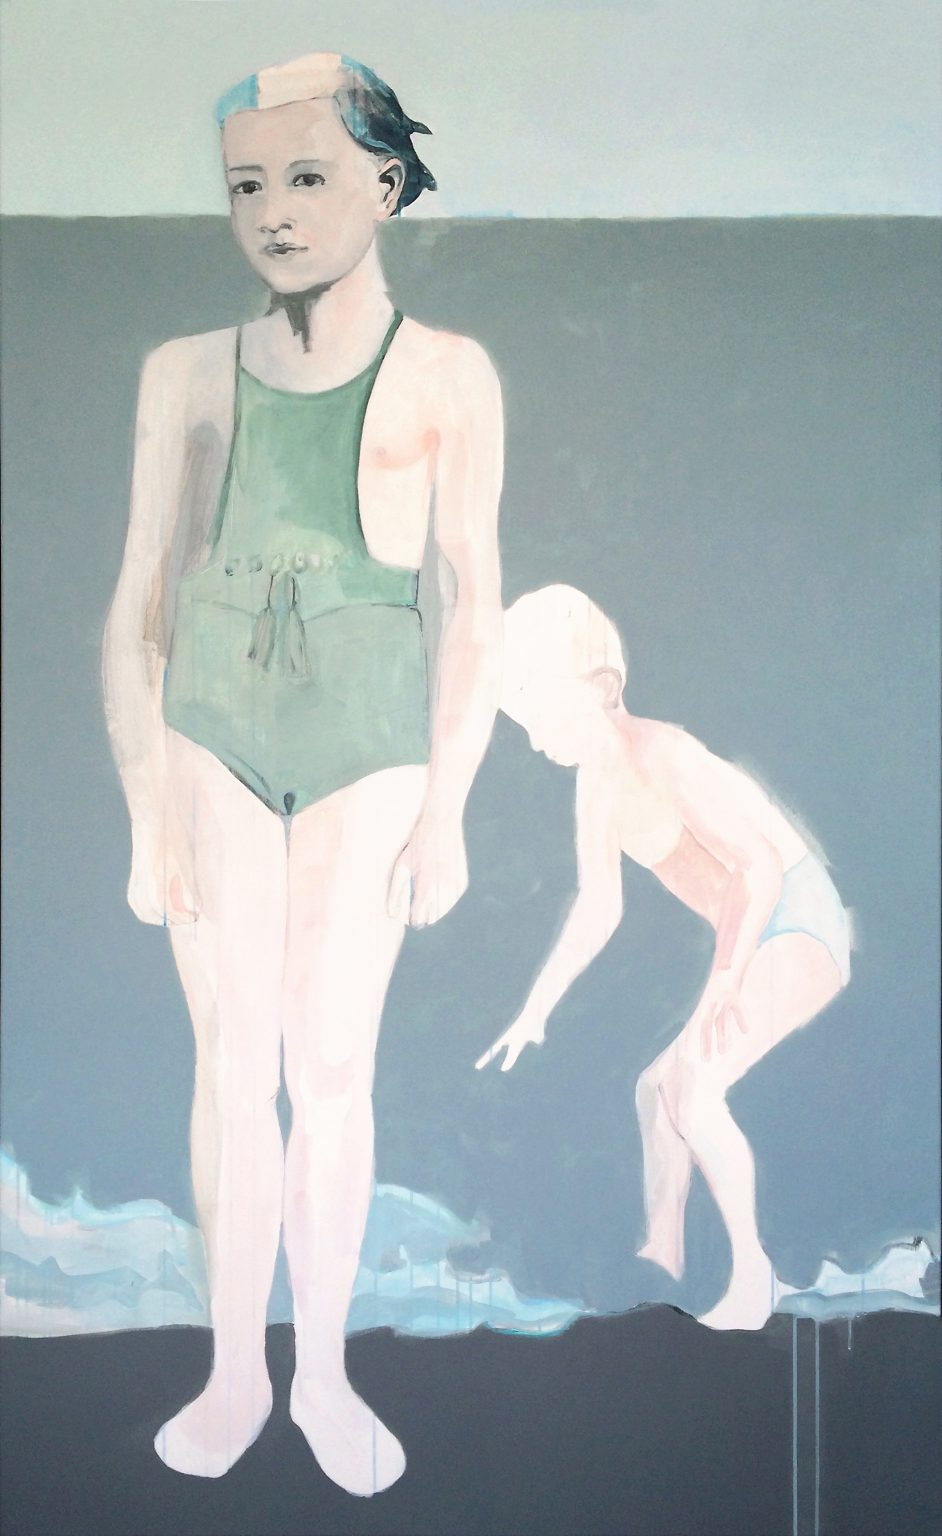 she's my older sister 190x125cm acrylics on canvas #SOLD